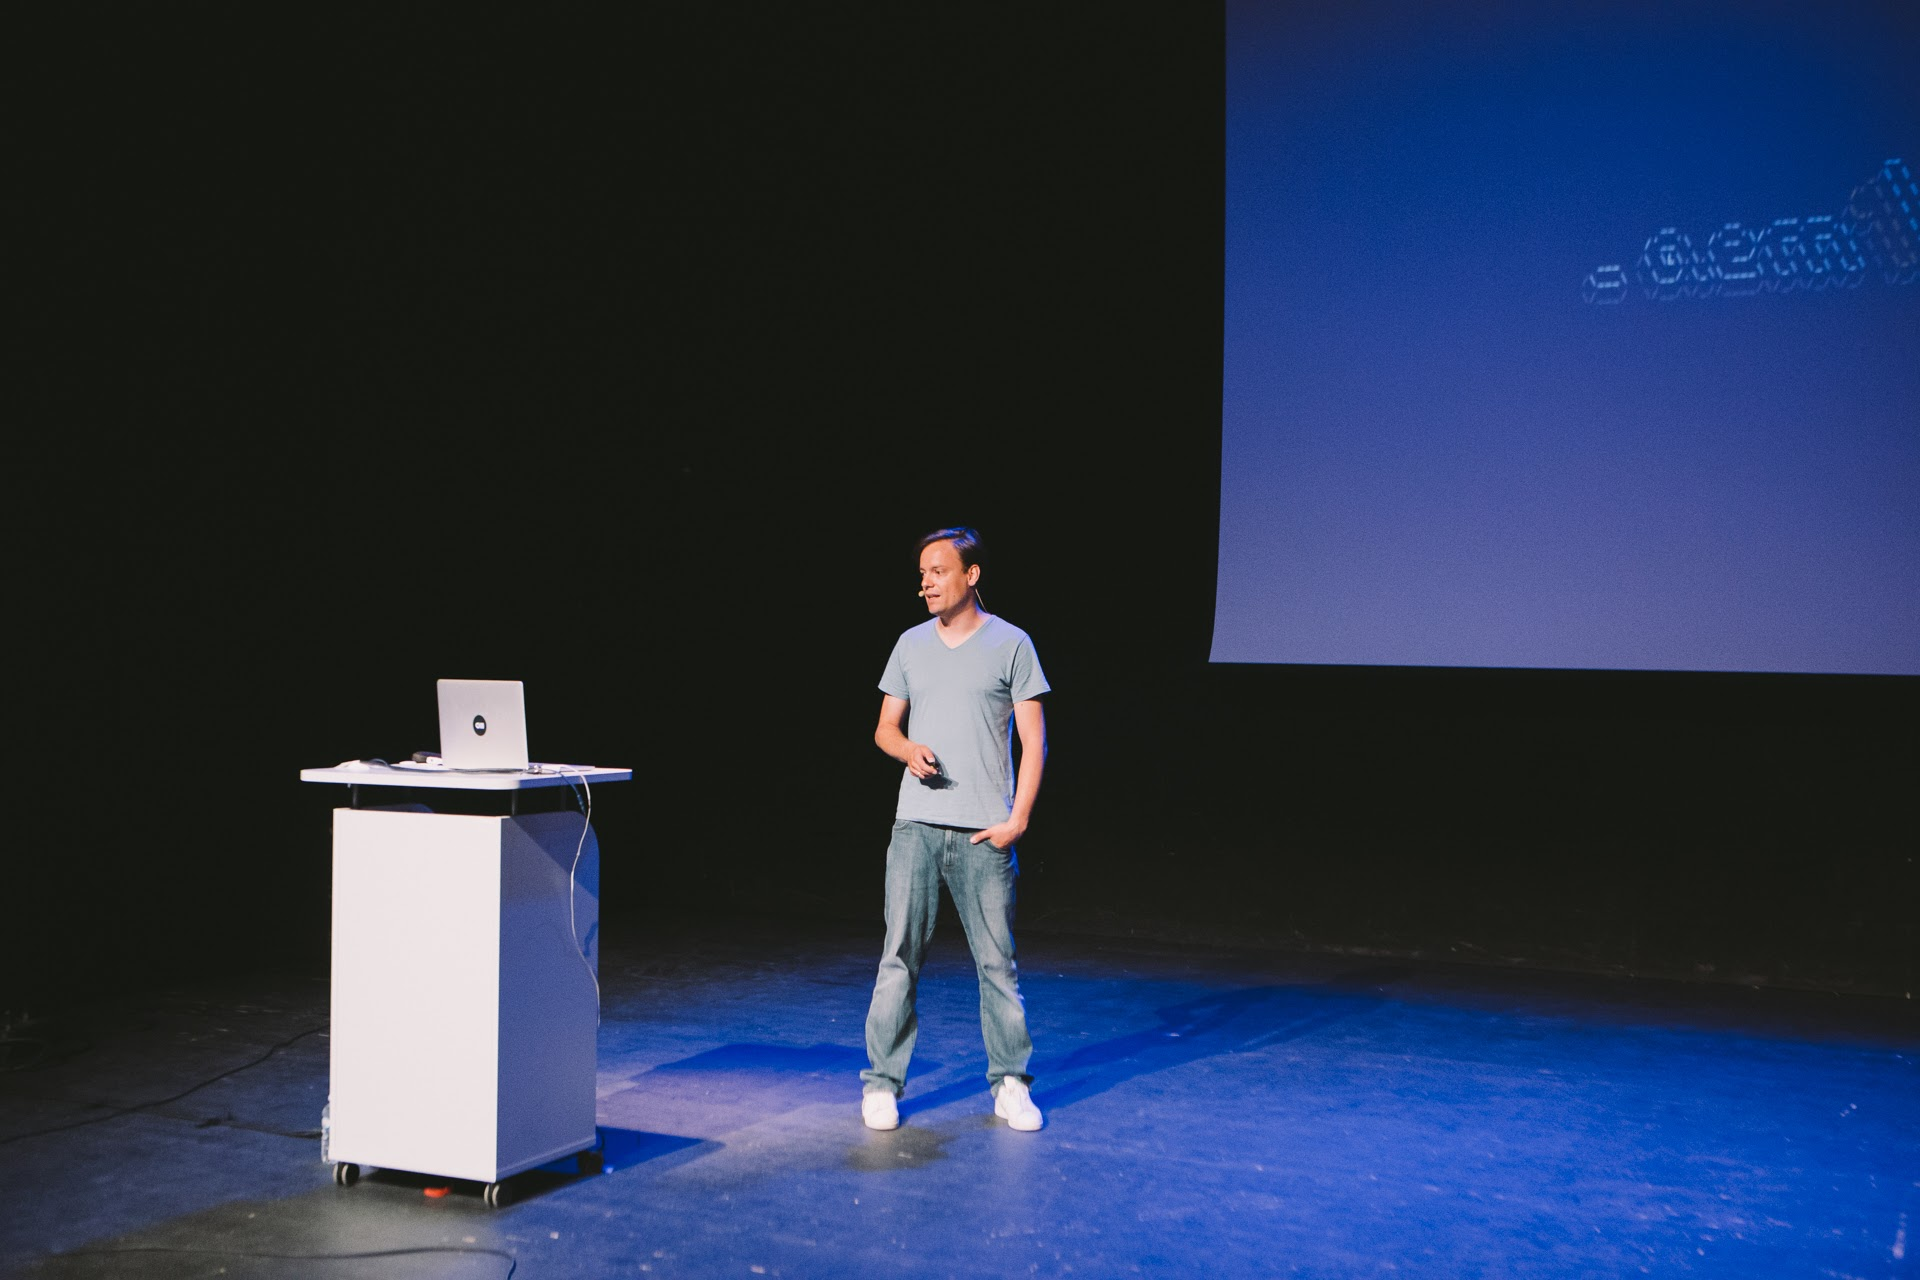 Image shows Martin Kleppe standing alone onstage. His computer is on a podium in front of him and a large screen is up on the wall behind him.